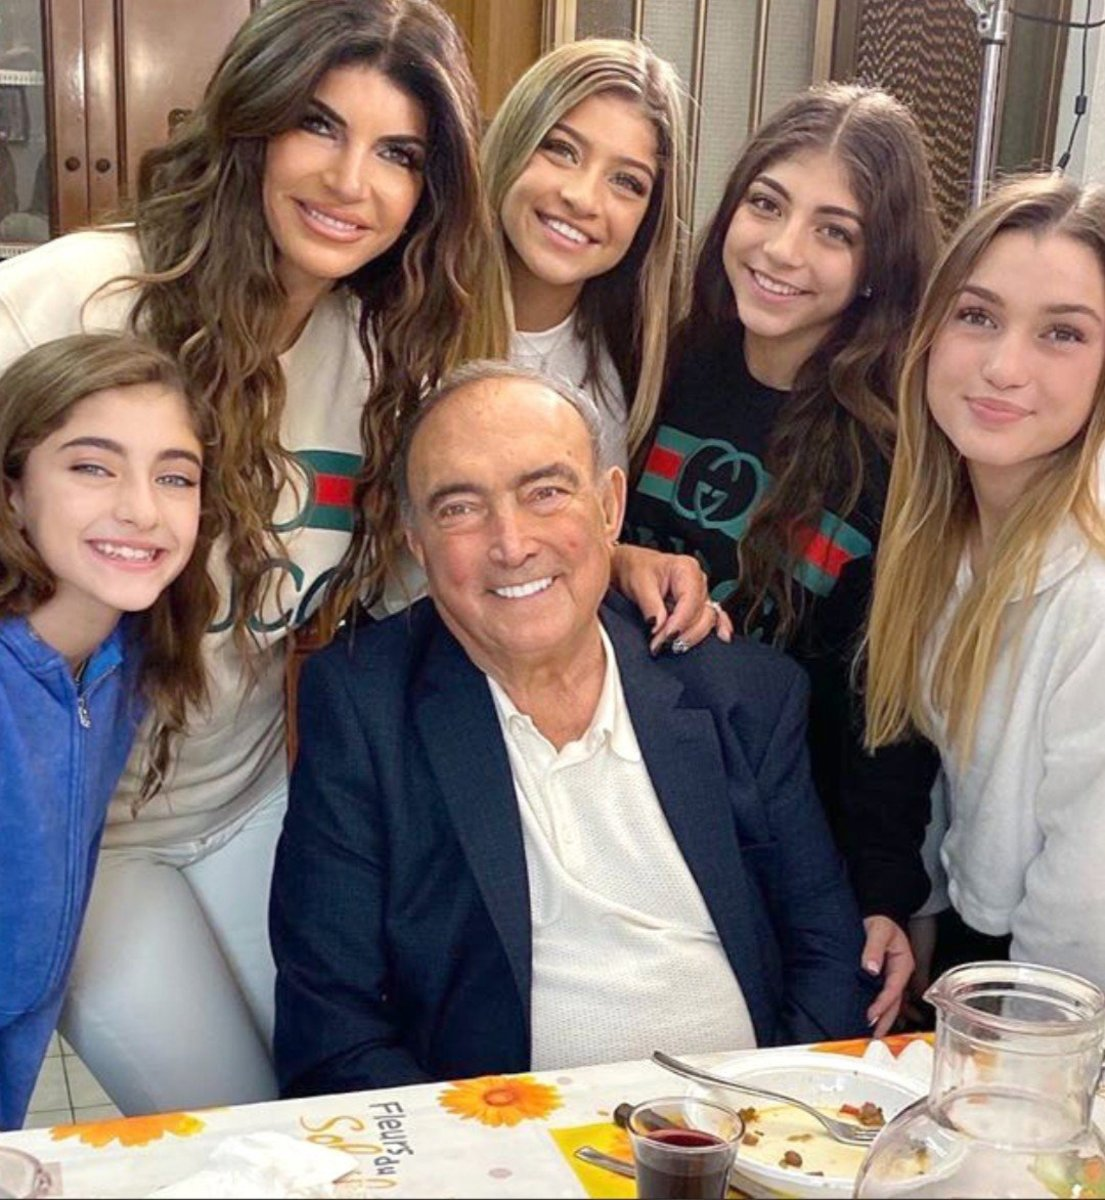 was-this-really-teresas-fathers-memorial-or-jackies-pity-party